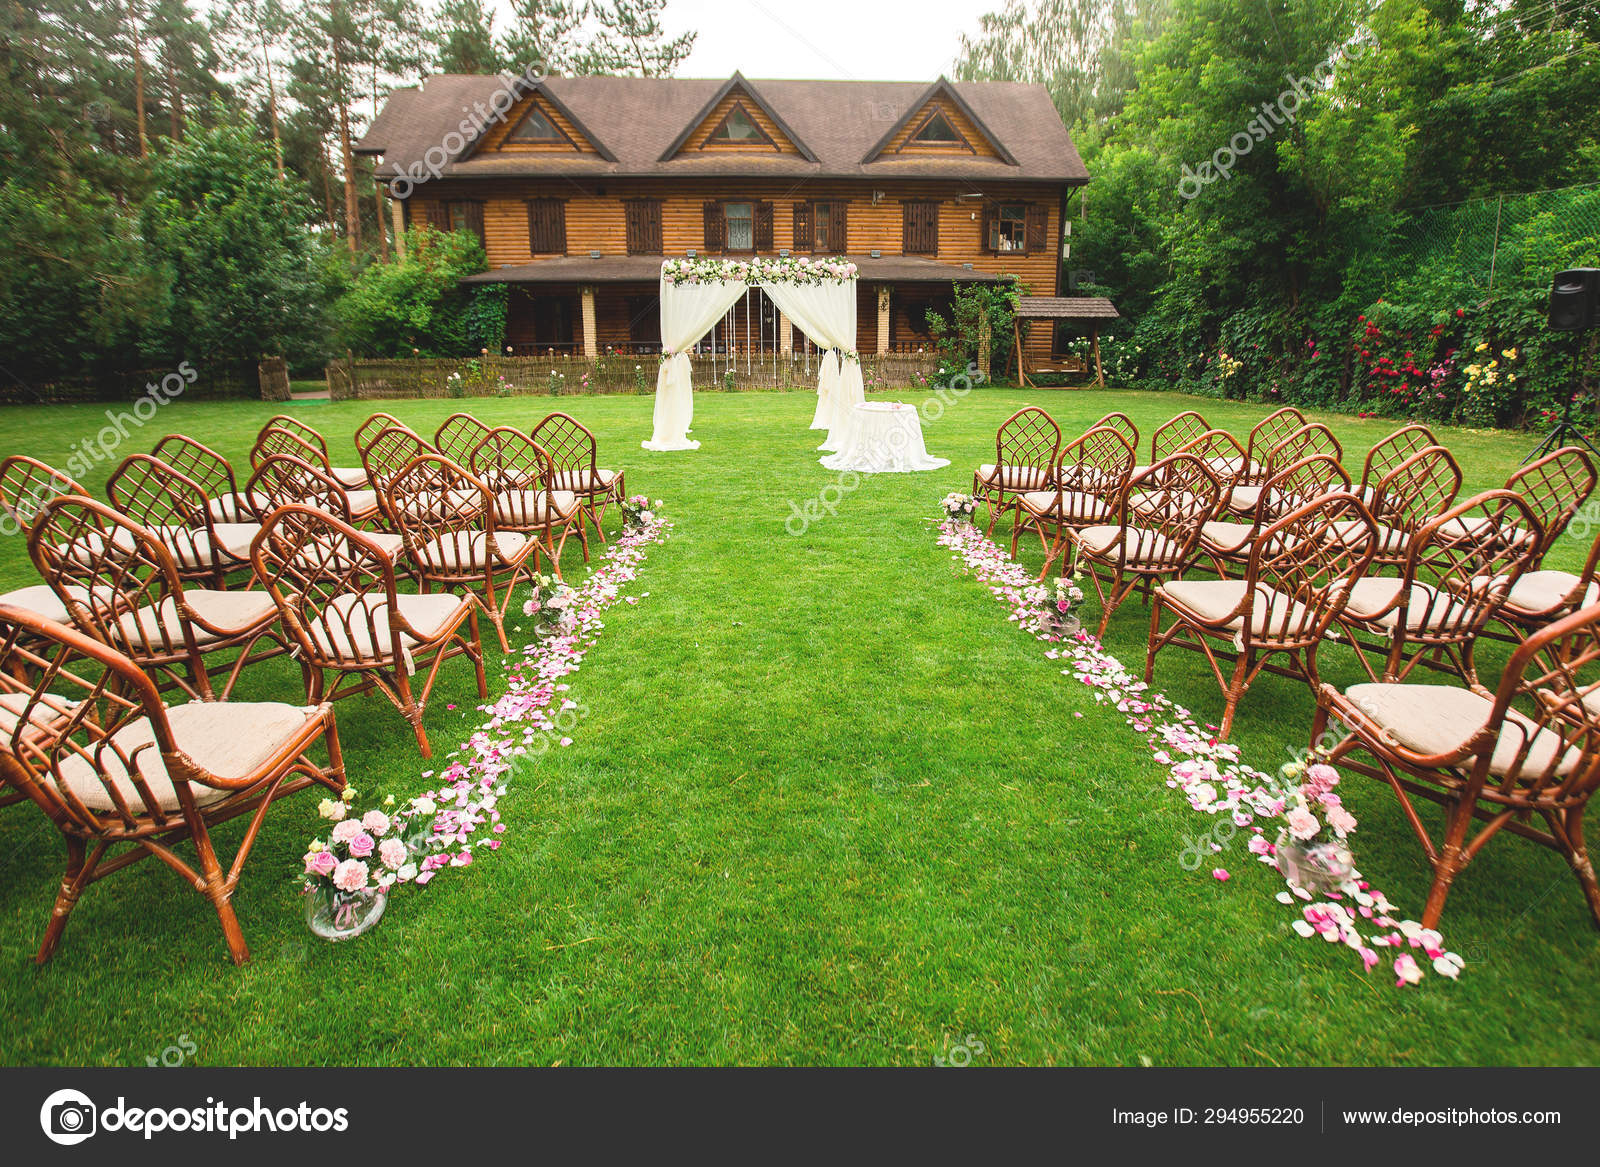 Outdoor Wedding Ceremony Decoration Setup Path With Petals Chairs Decorated With Colorful Ribbons White Arch Stock Photo Image By C Lesley2692 294955220